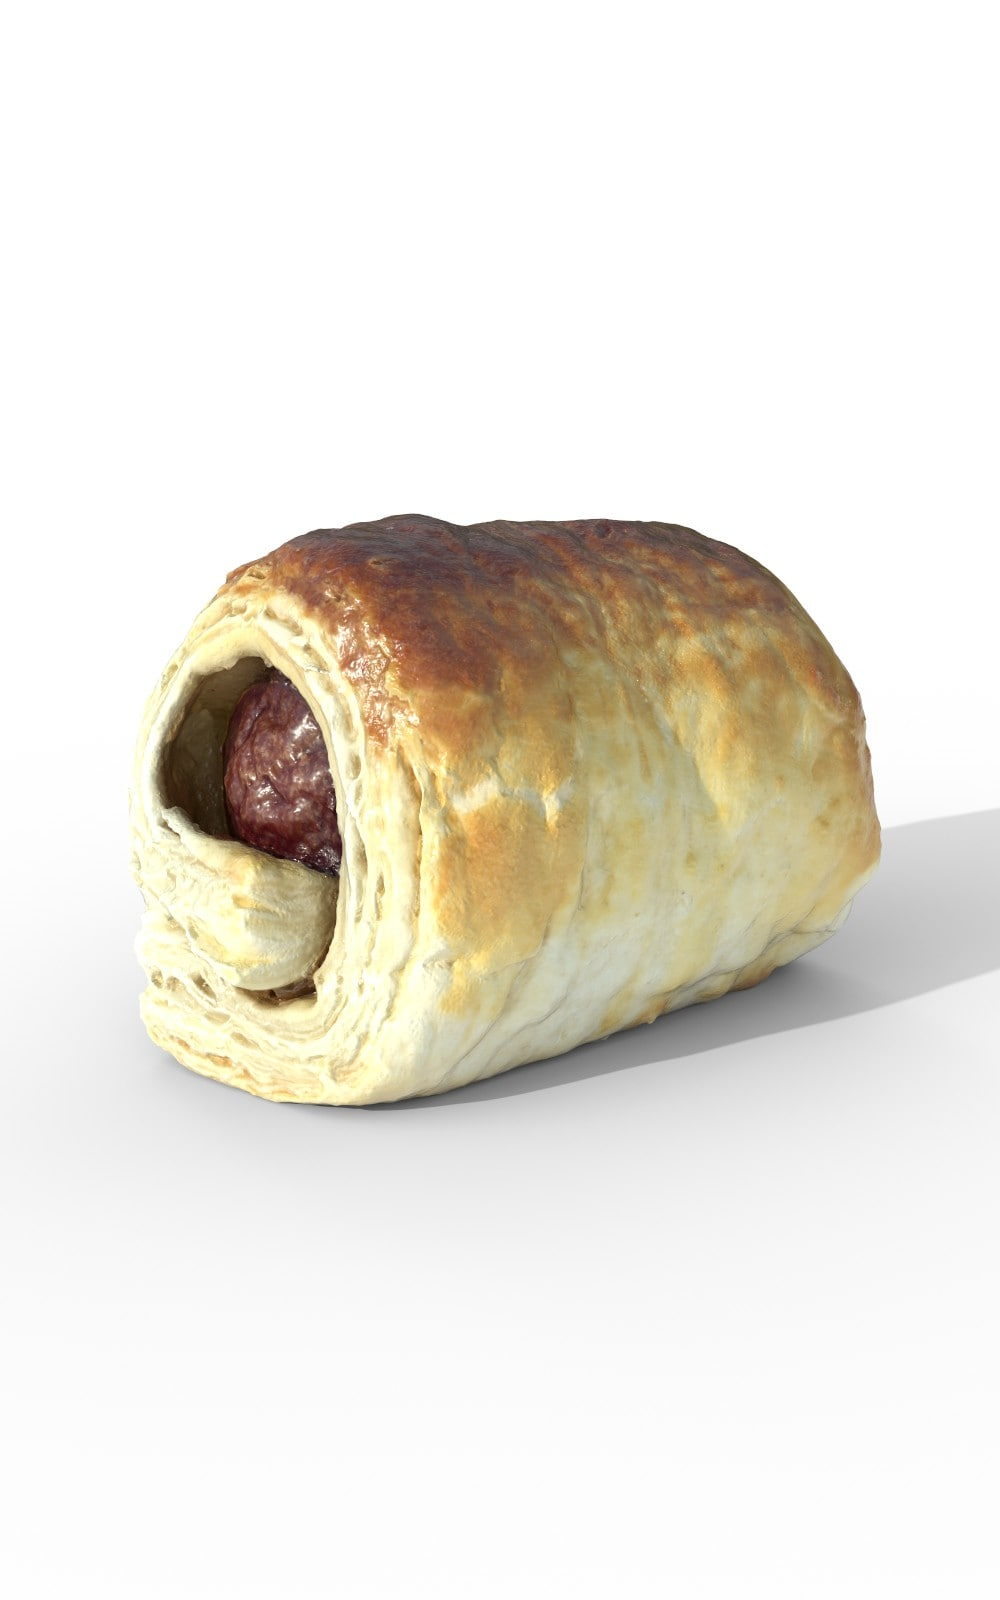 Sausage Puff Pastry Meal Premium 3D Model - image 1